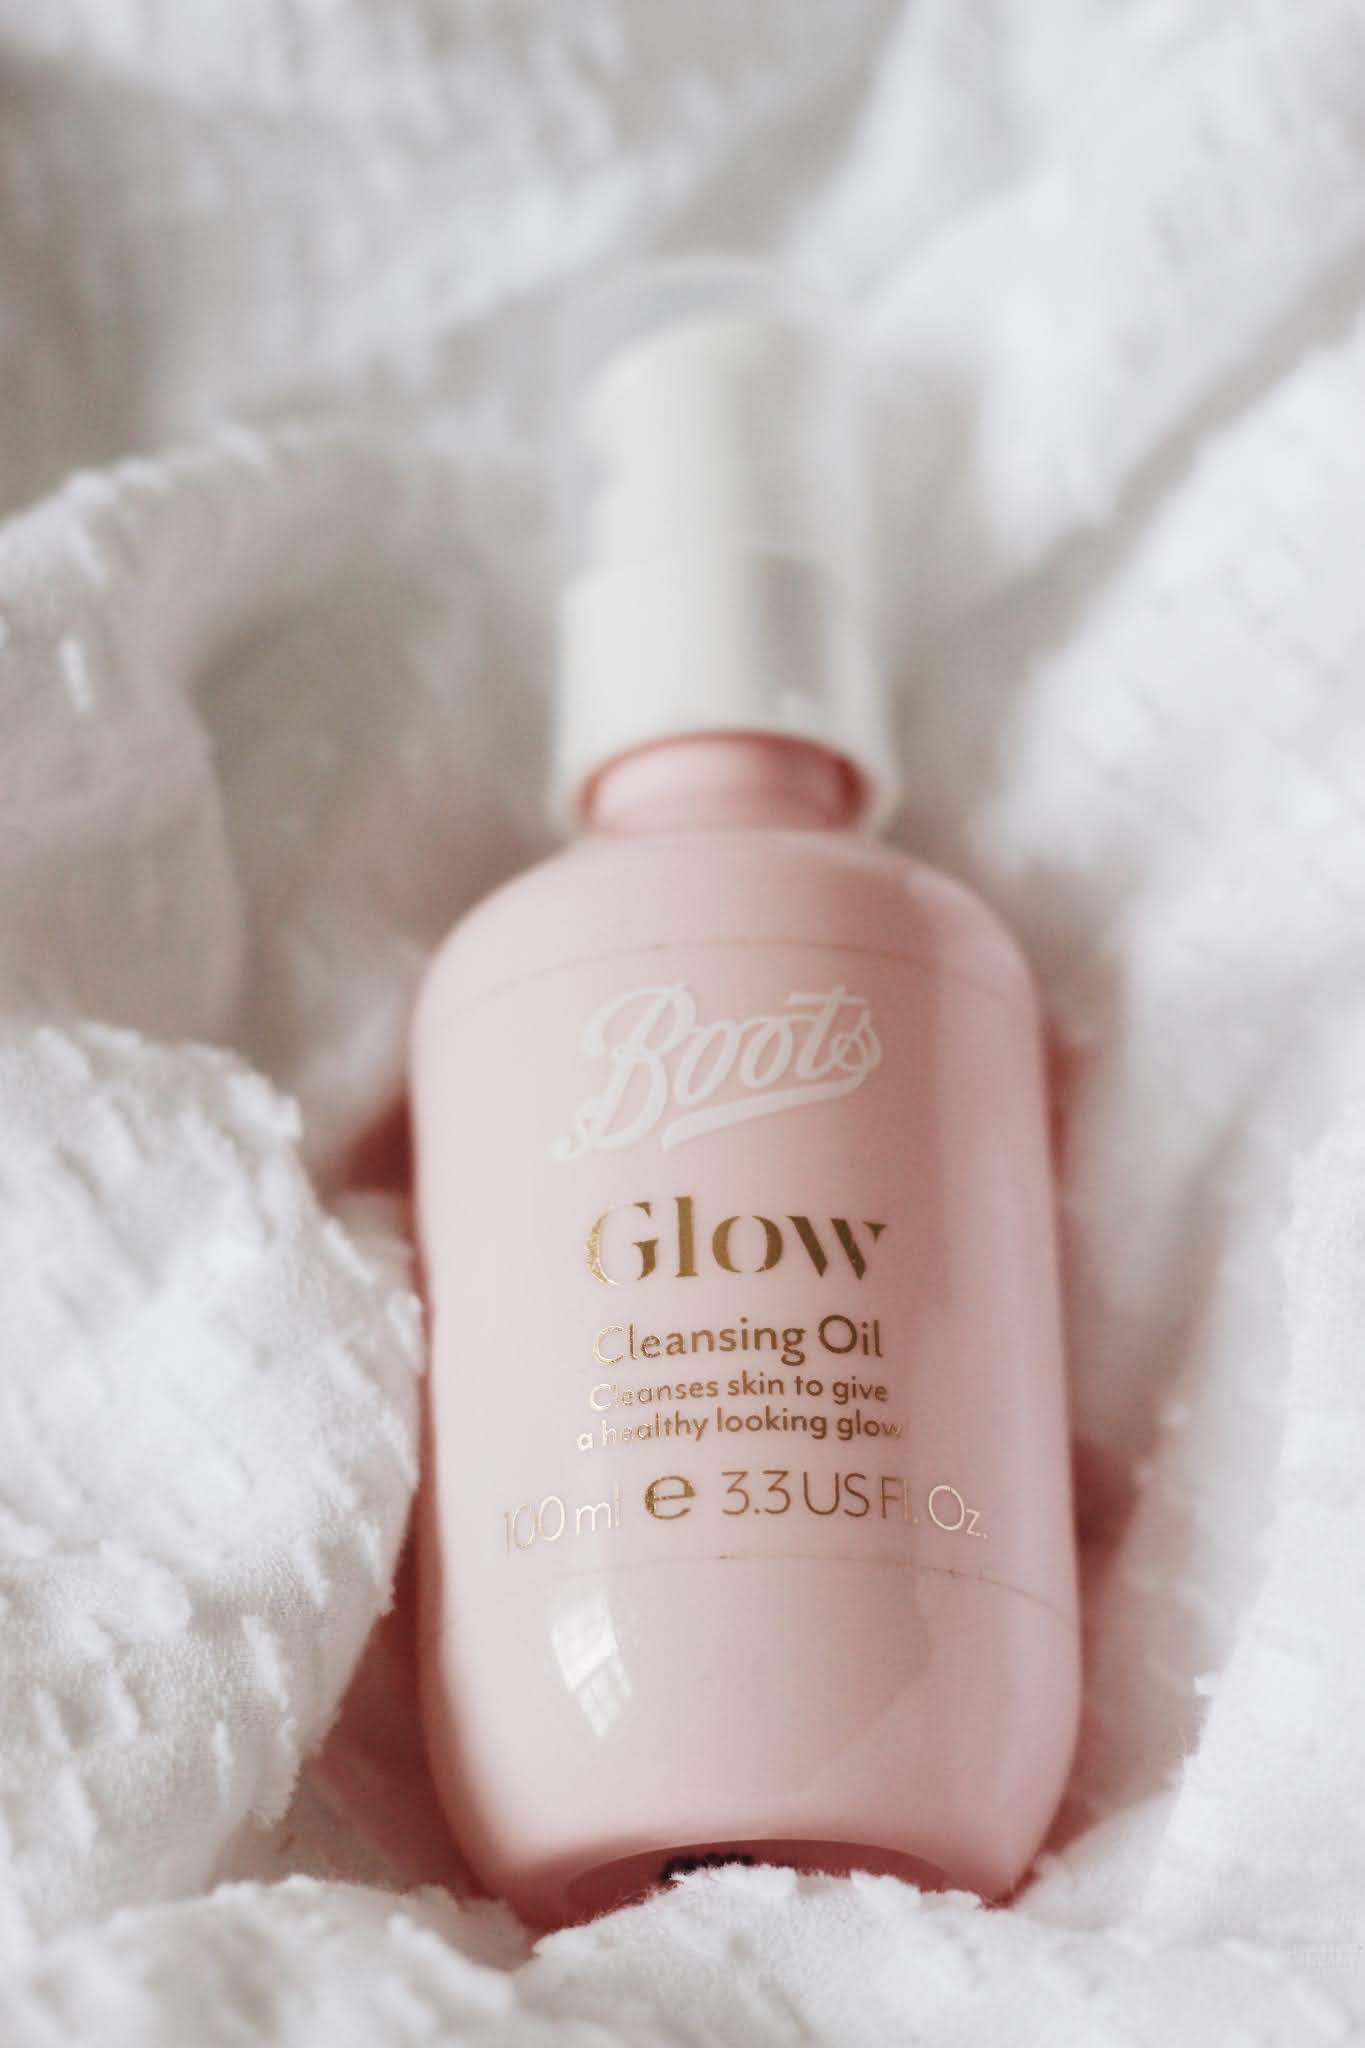 Boots Glow Skincare Affordable Review